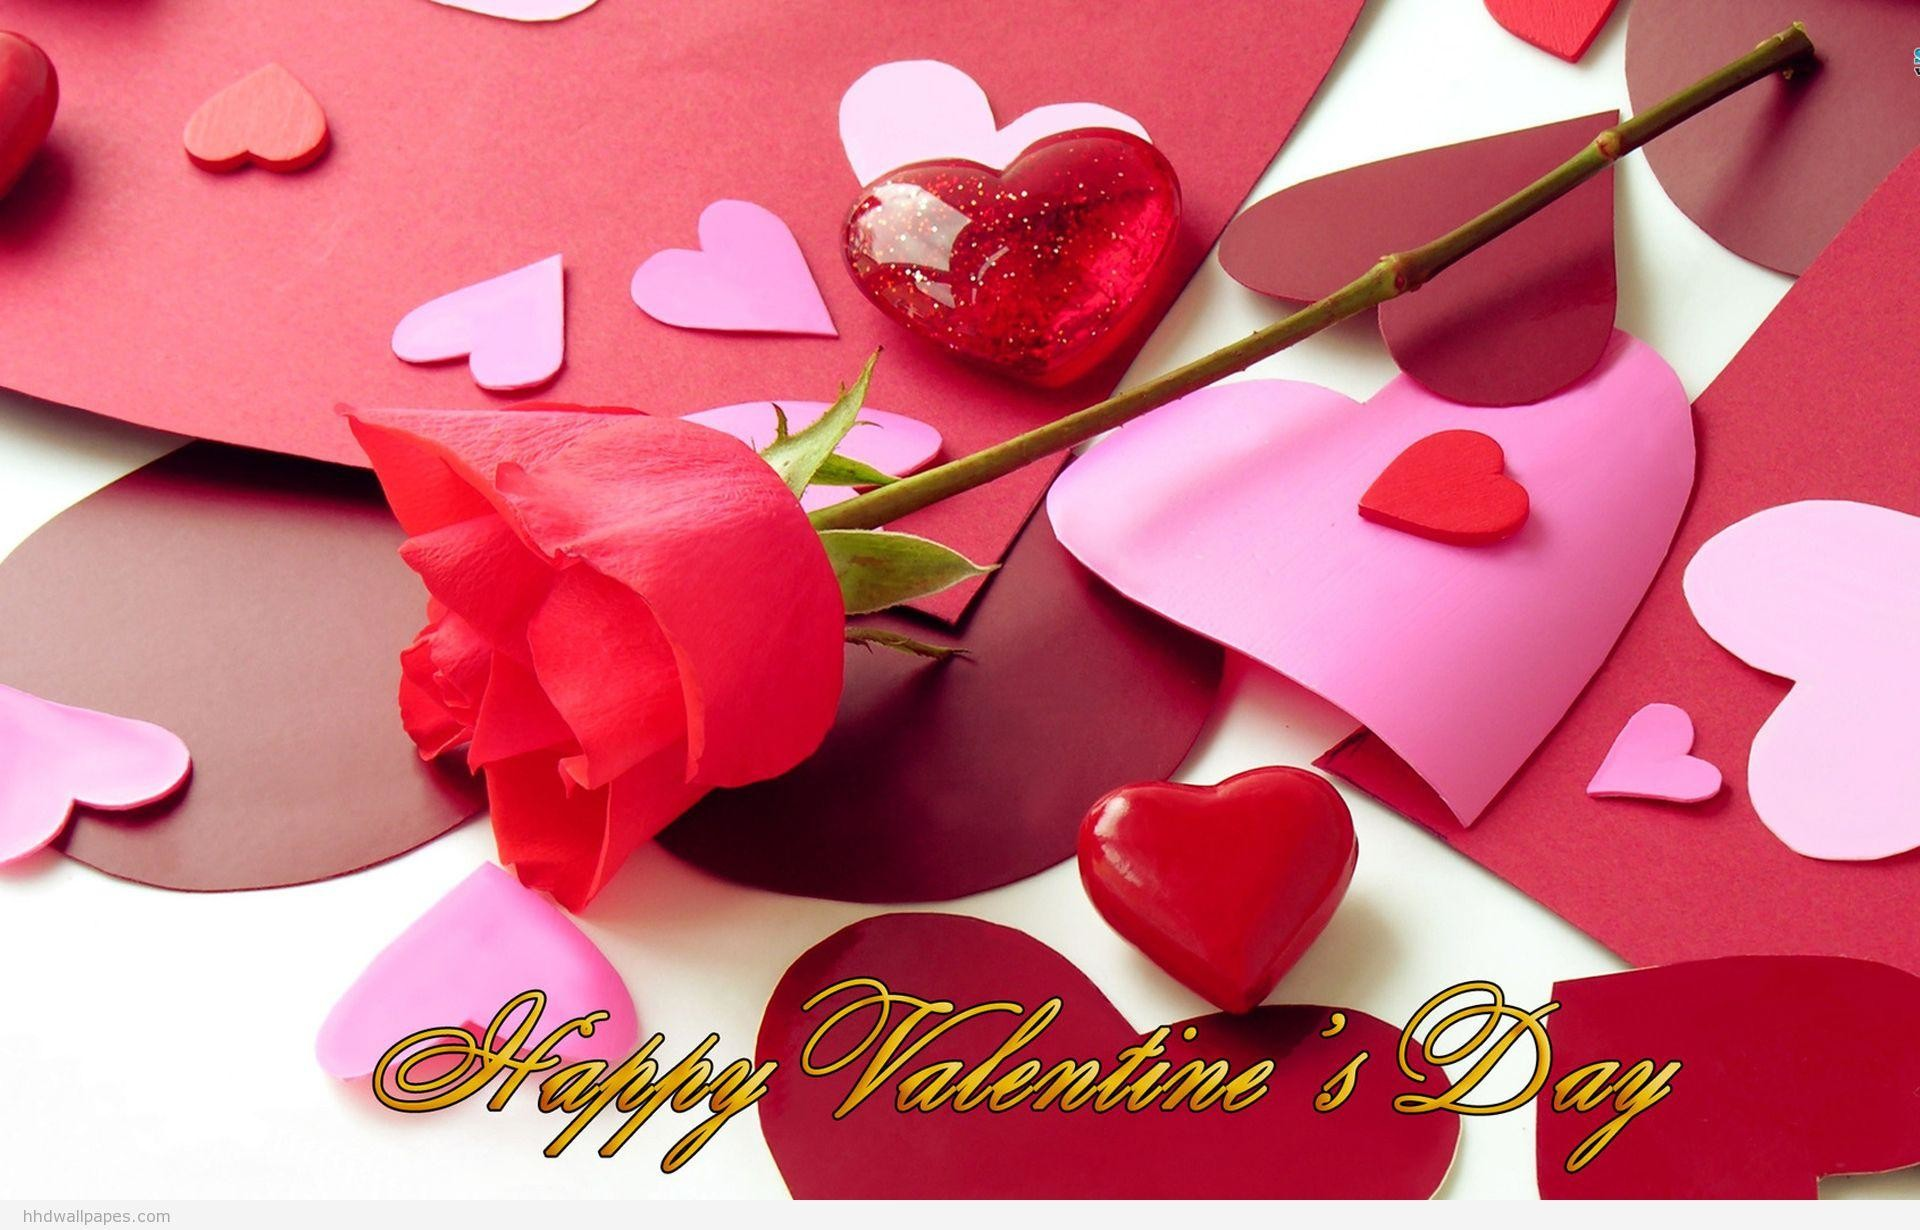 1920x1230 Valentine Day Love Wallpapers Hd Hd Wallpapers Desktop Wallpapers .